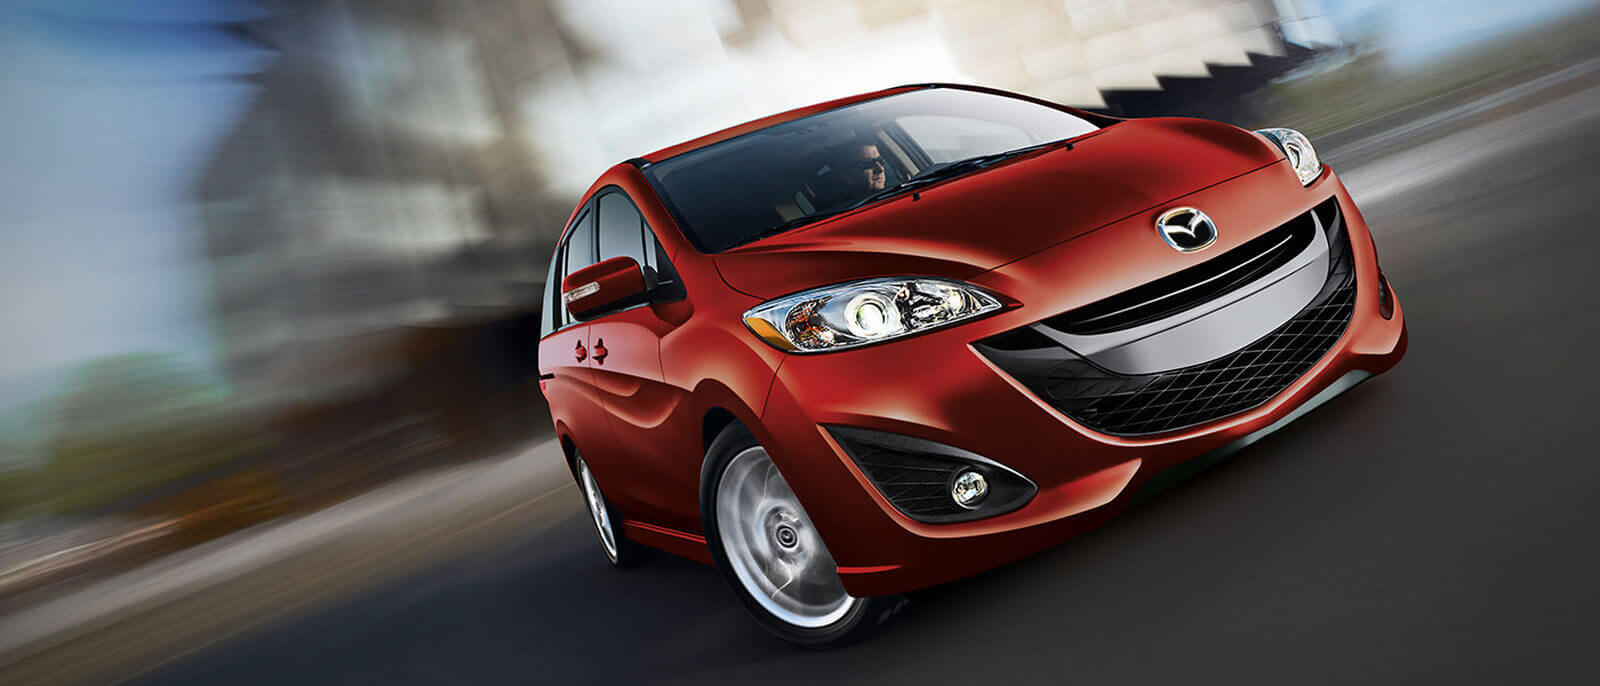 2015 Mazda5 front view